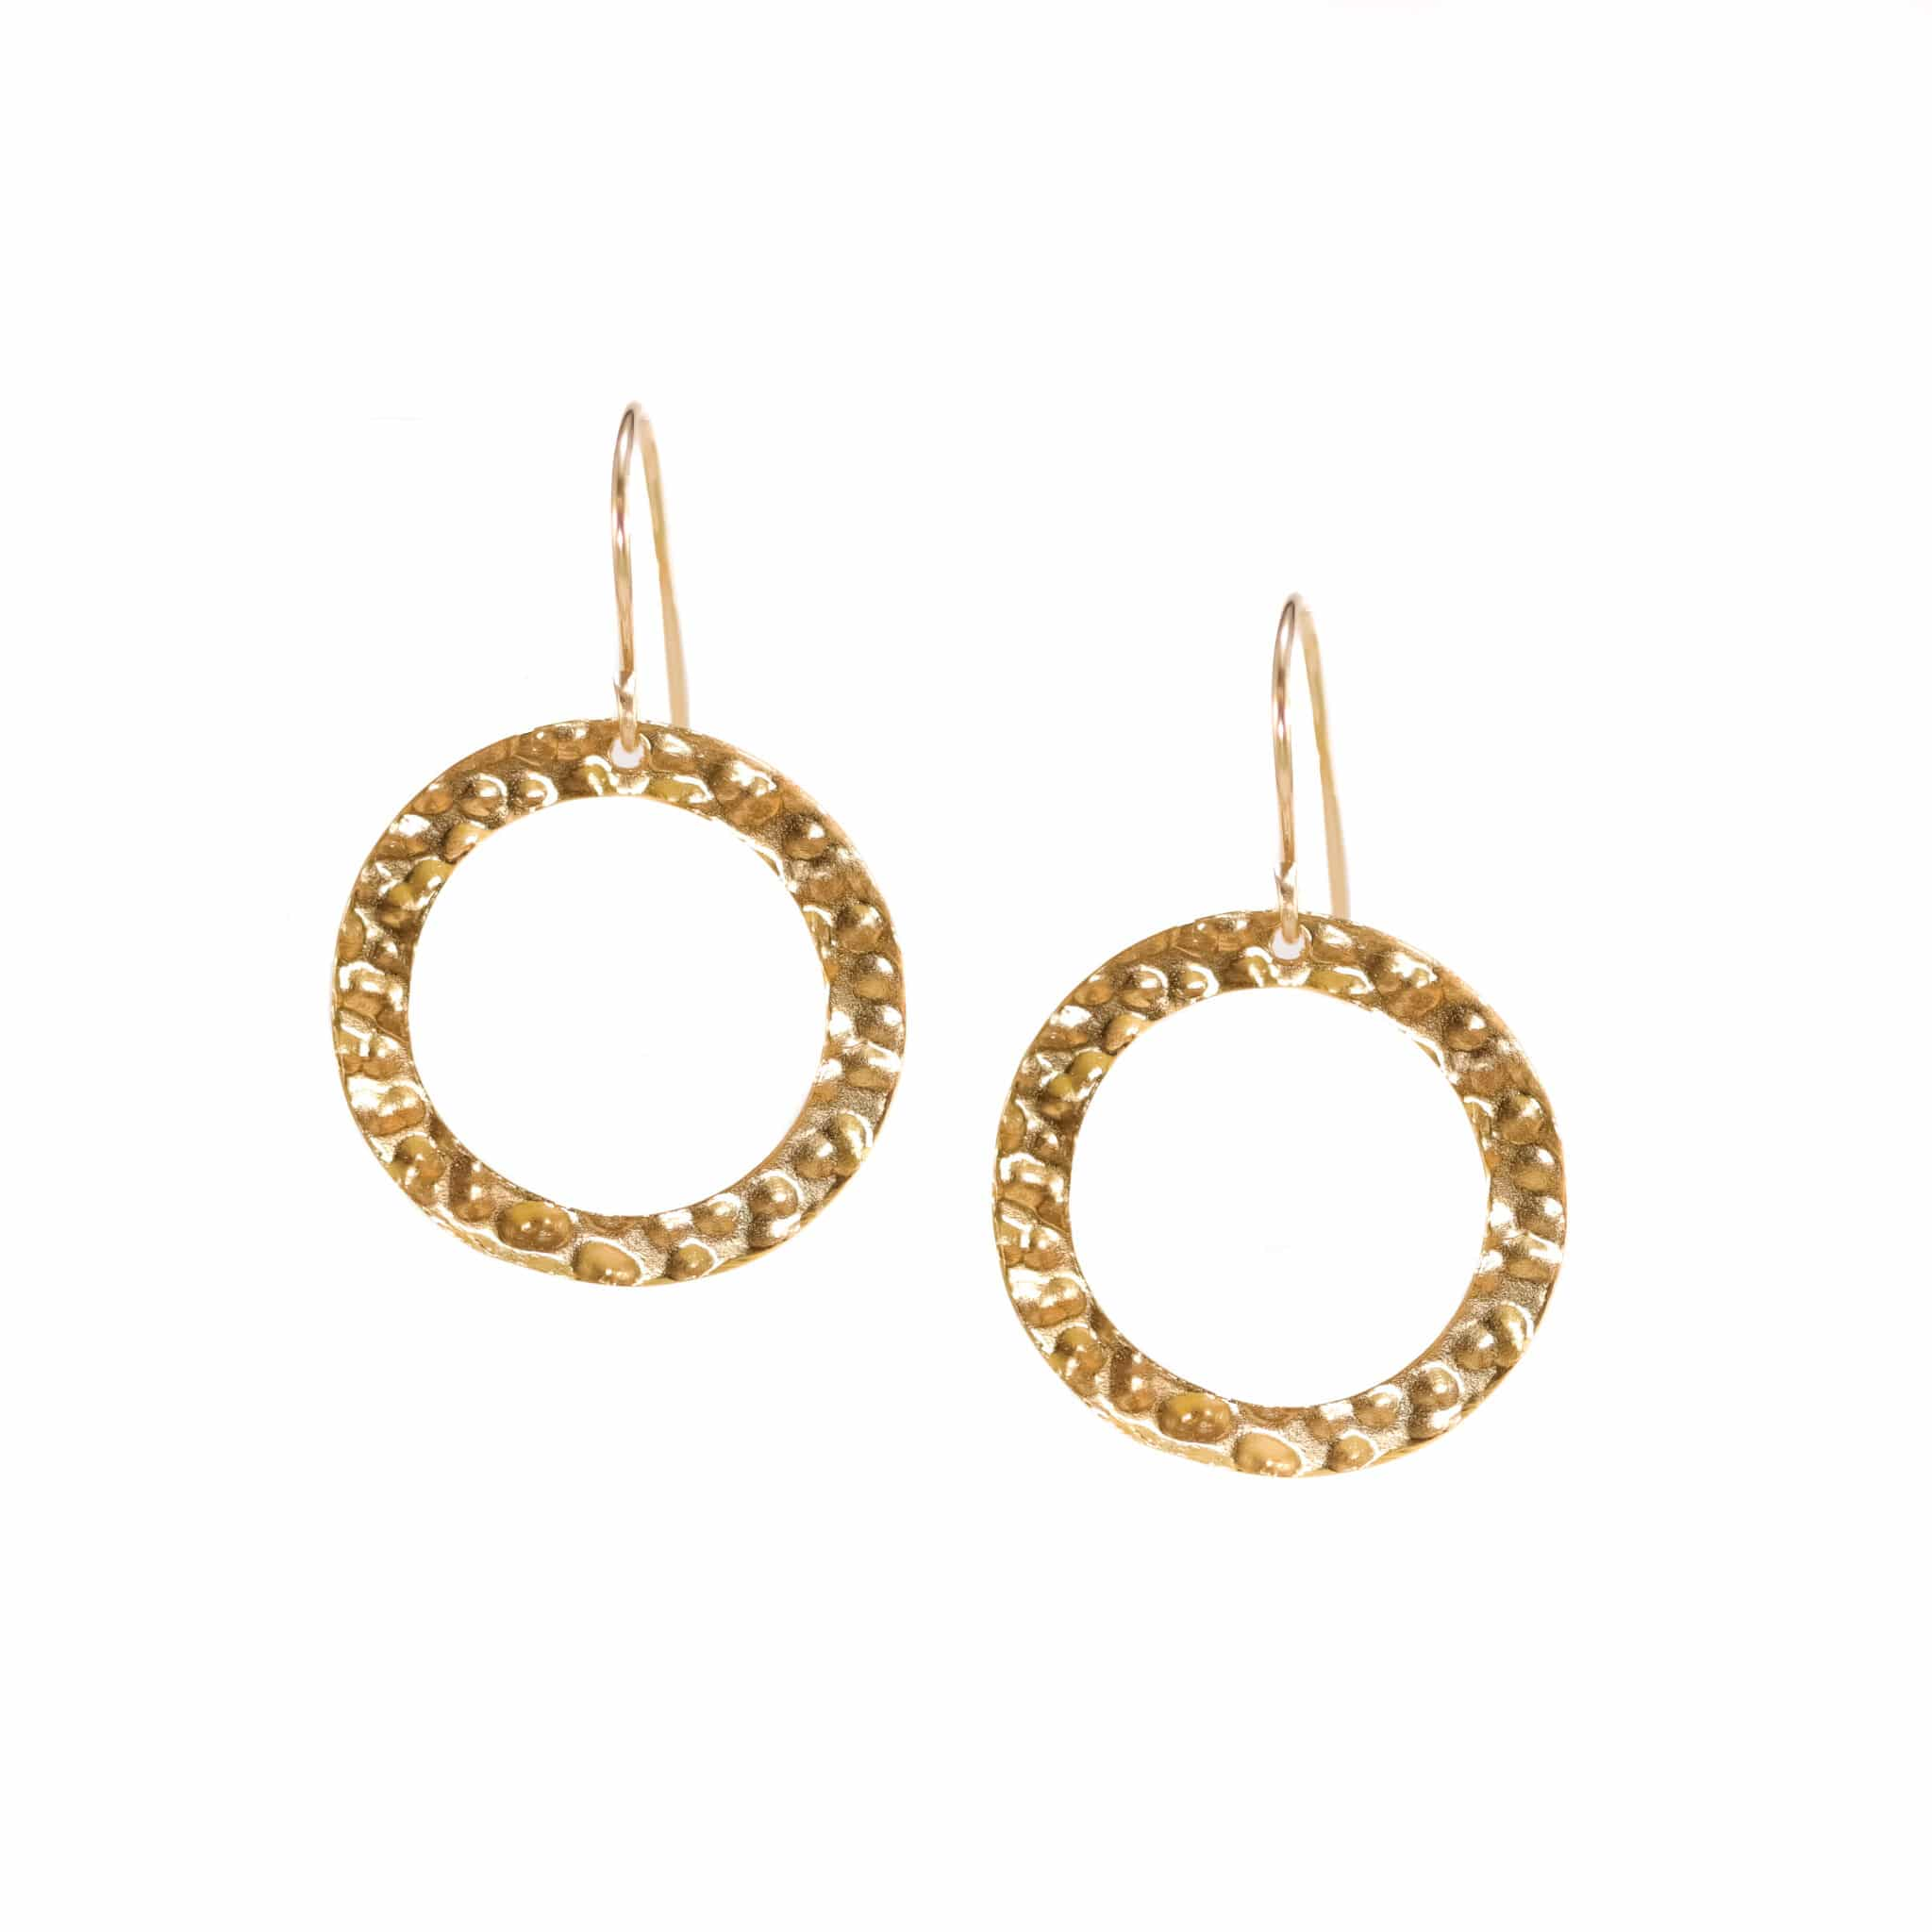 Impressions Round Gold Hoop Earrings